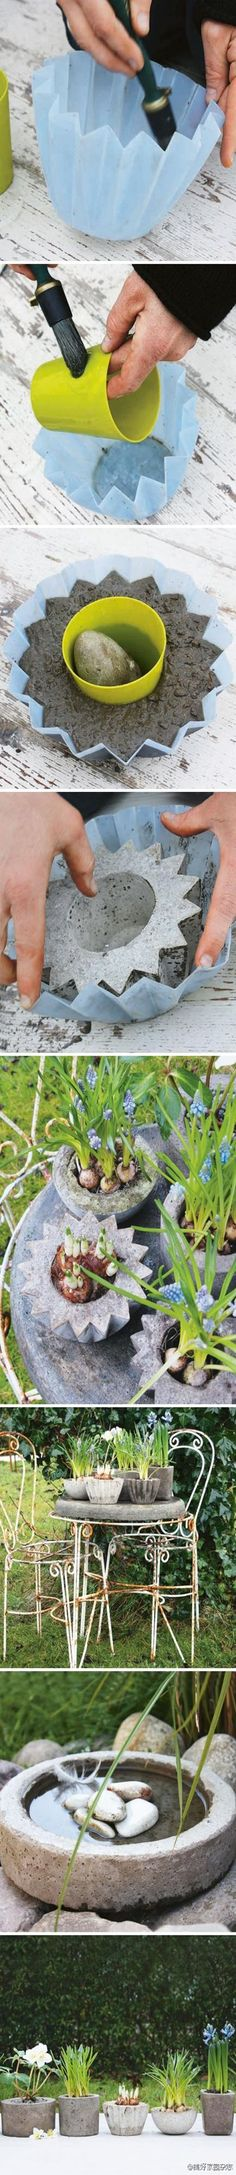 DIY Planters from Cement - the How-to